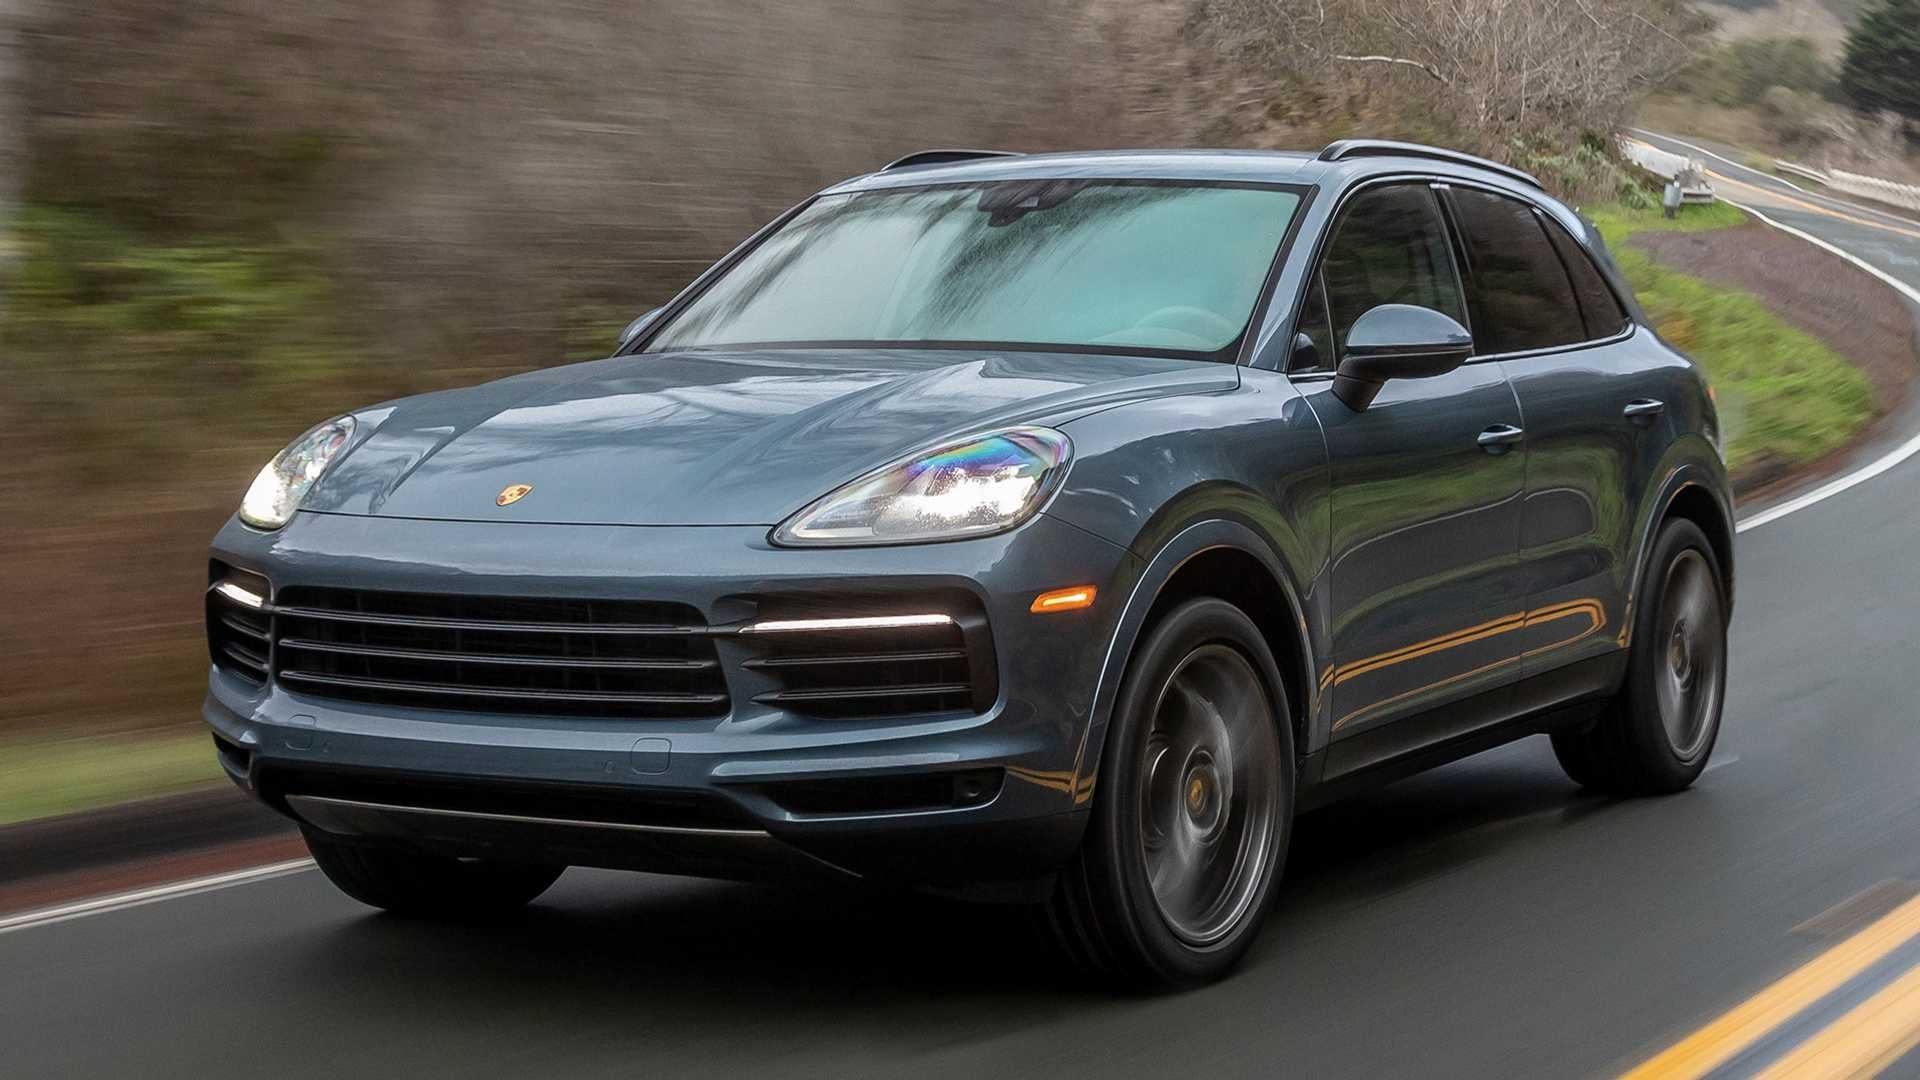 Porsche Cayenne Turbo S E Hybrid Will Be Brands Most